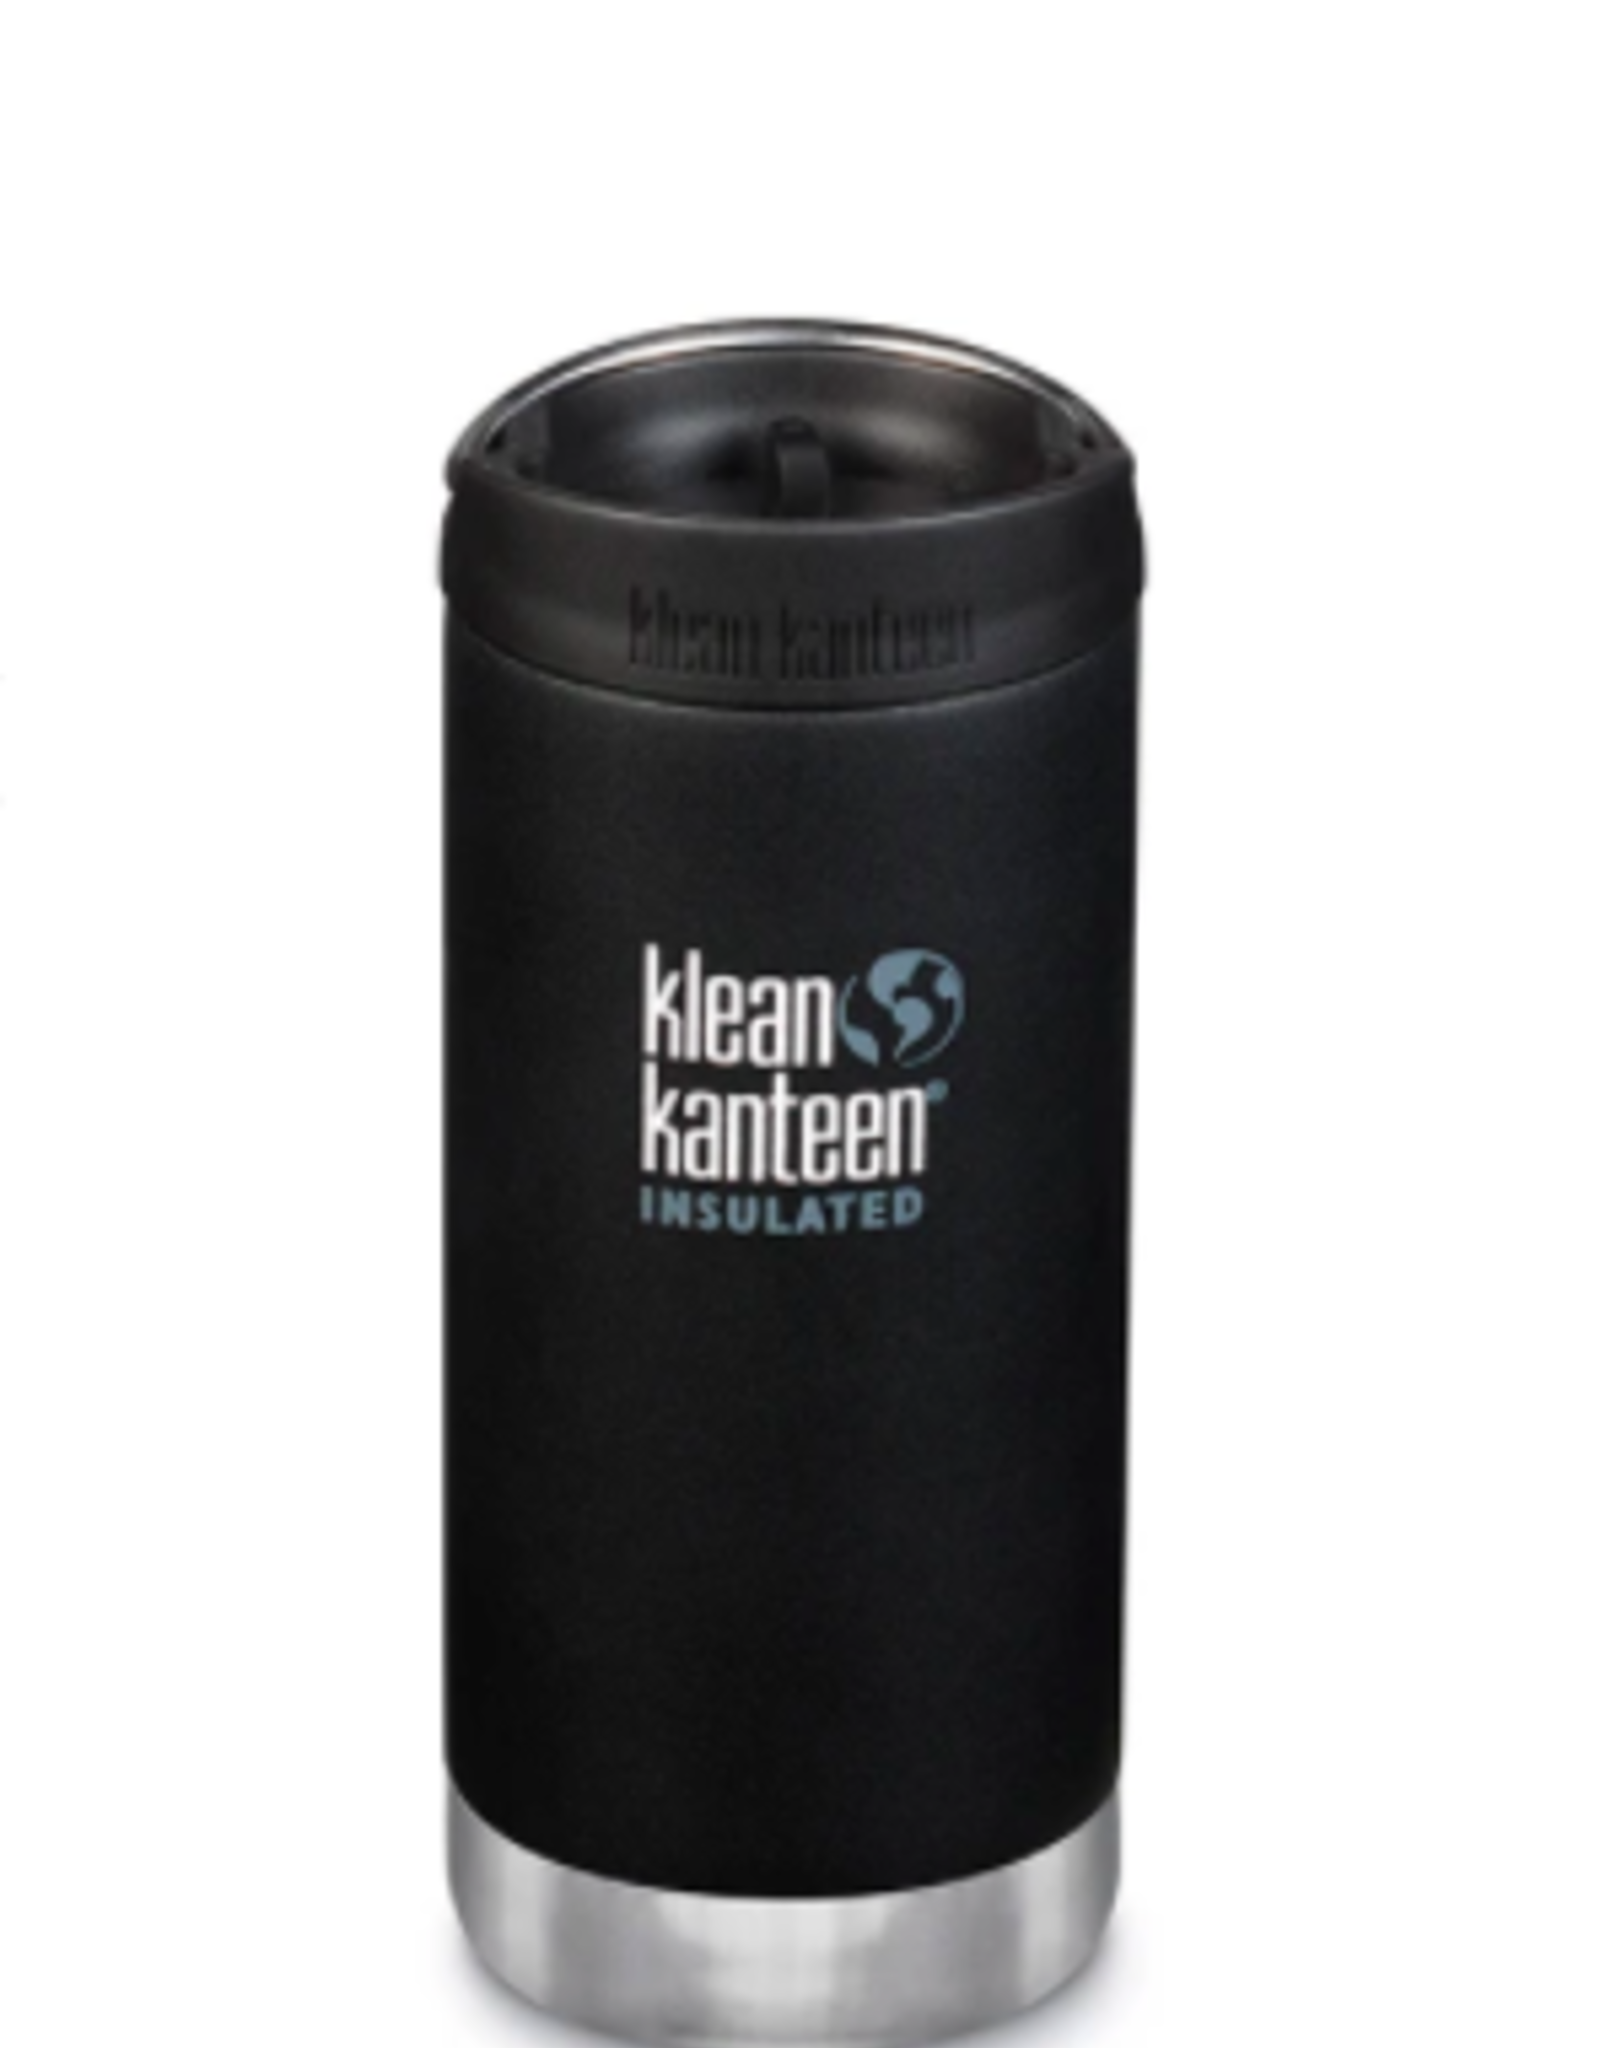 Klean Kanteen 12 oz. Insulated TKWide Bottle